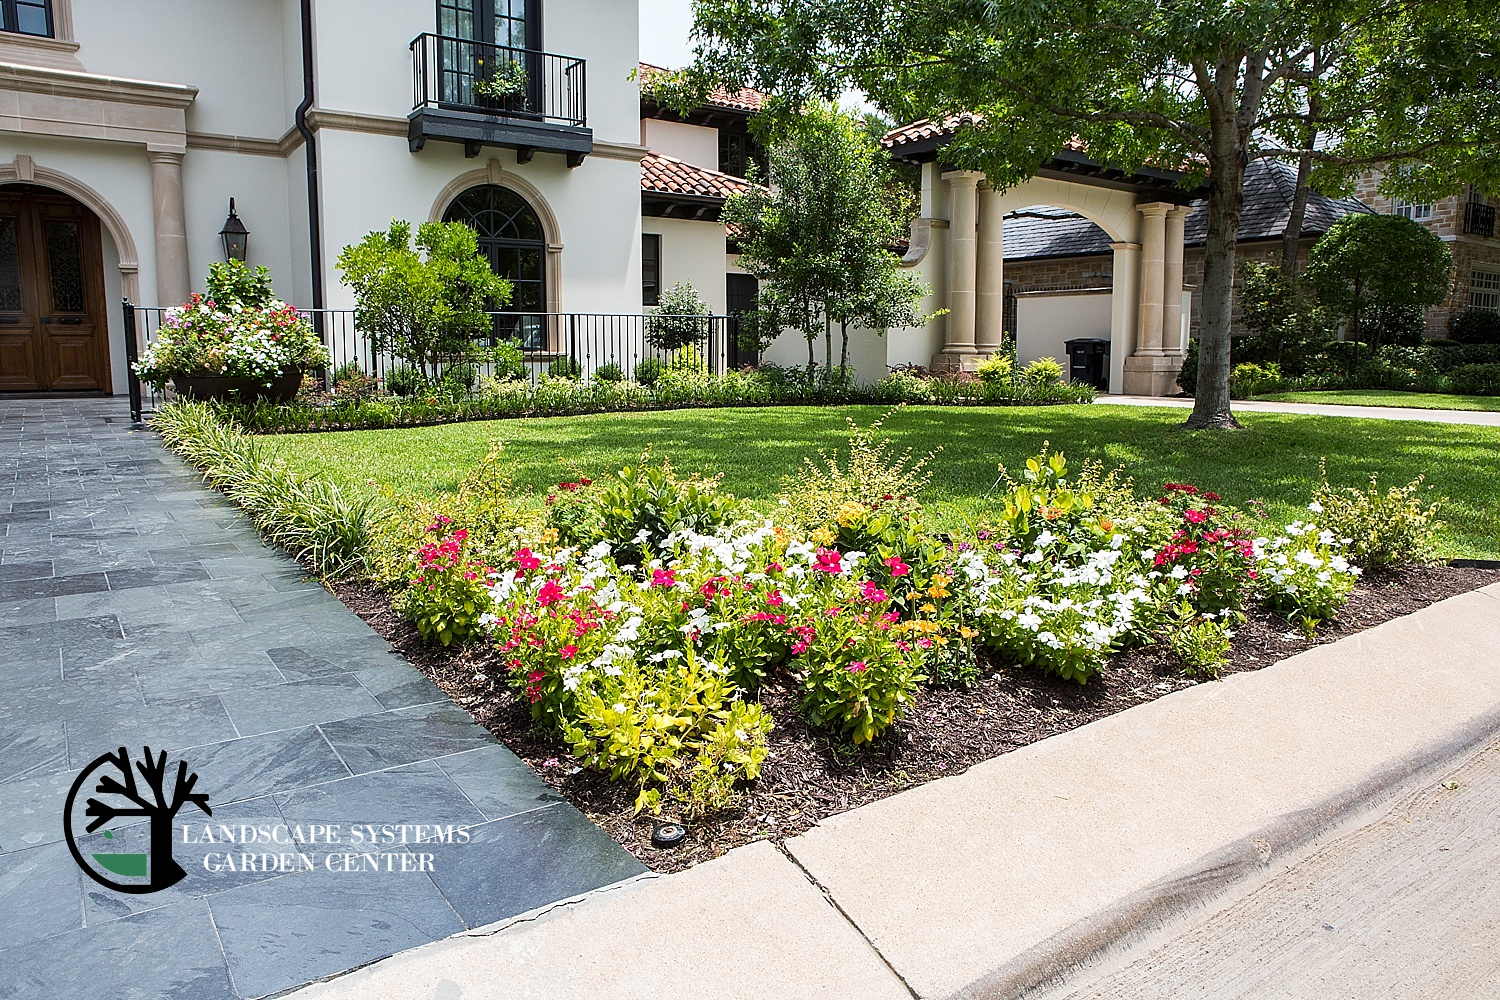 From Trees And Shrubs To Borders And Ground Coverings, Even Gorgeous  Potters, Fountains And More, We Will Make Your Front Yard The Envy Of All  Your ...